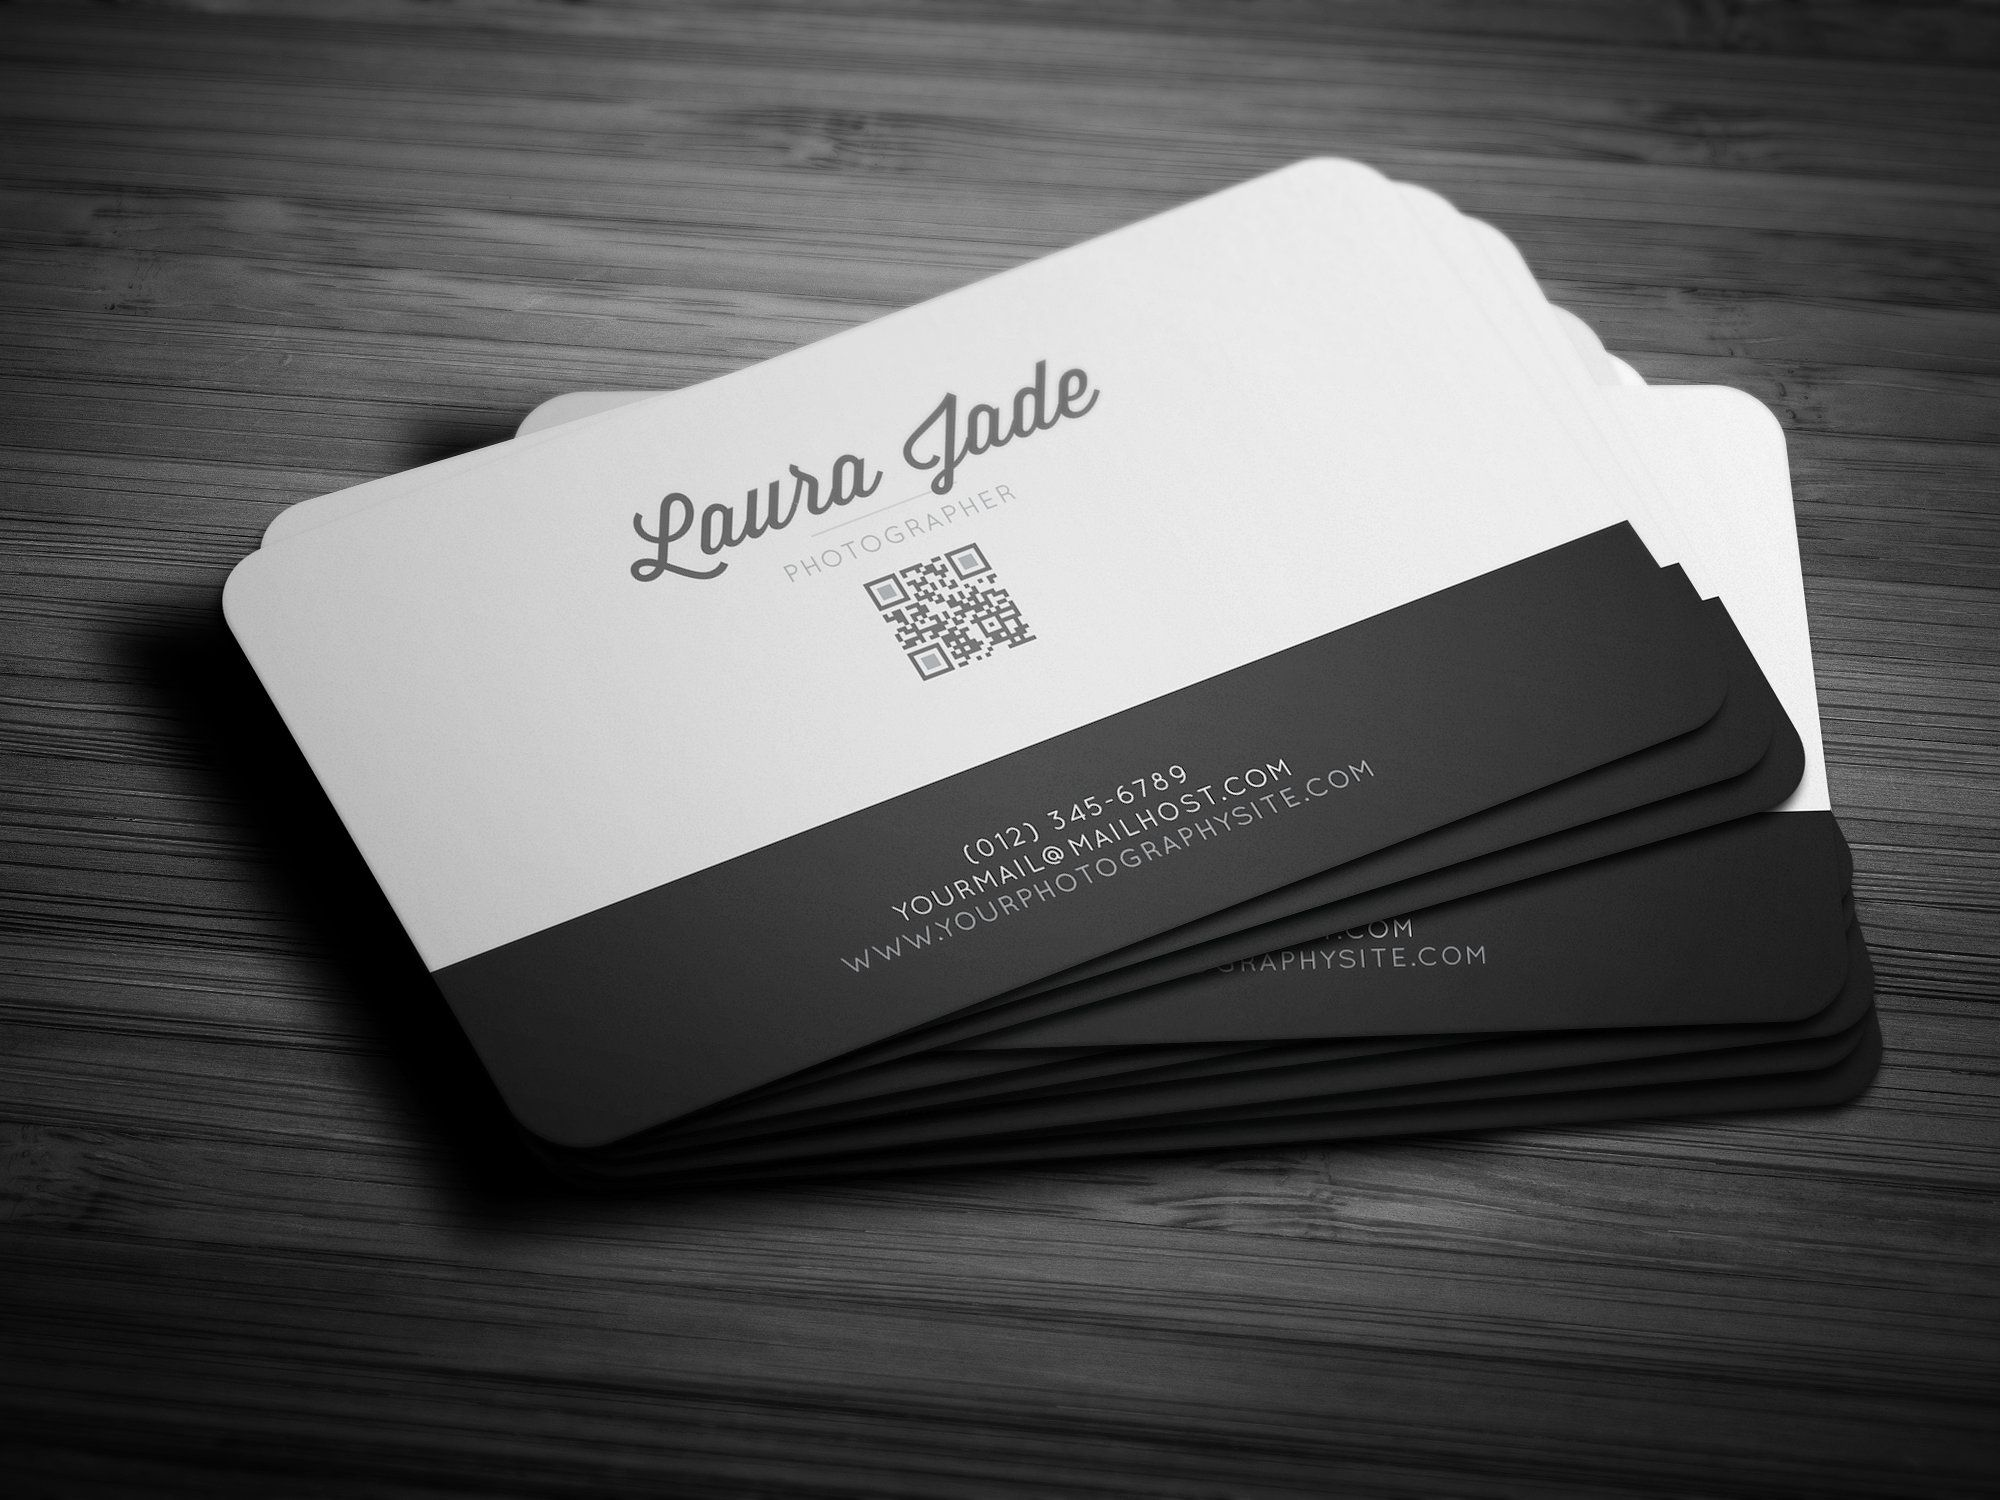 Impression Business Card Round Business Cards Double Sided Business Cards Business Card Template